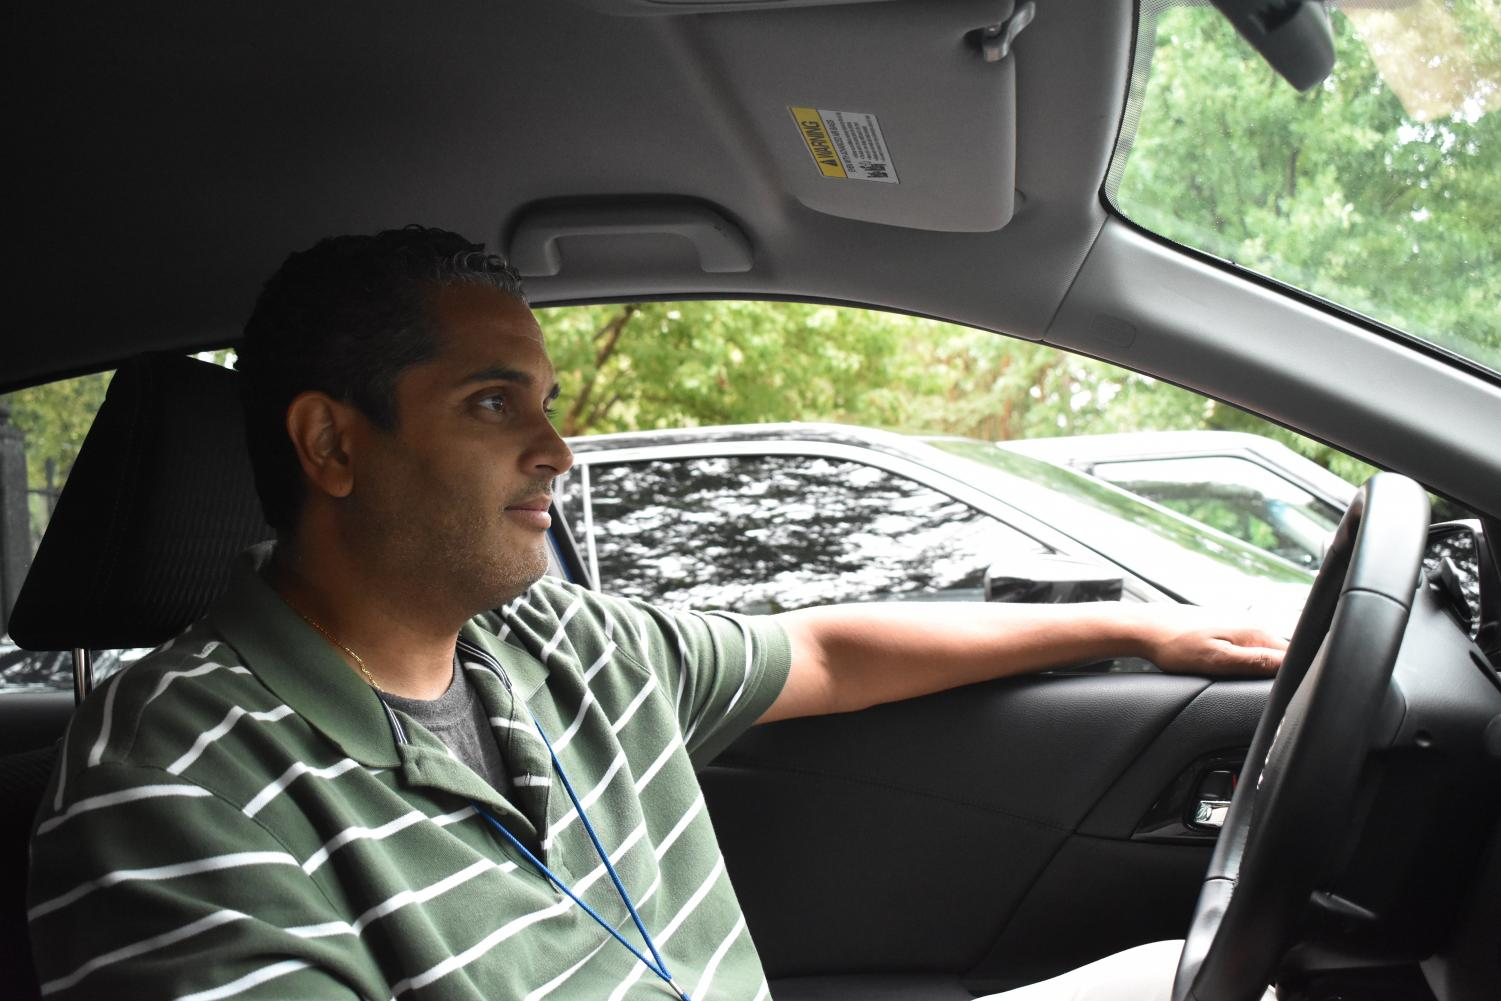 School Business Manager Byron Barnes studies the traffic patterns during his commute home from Grady High School.